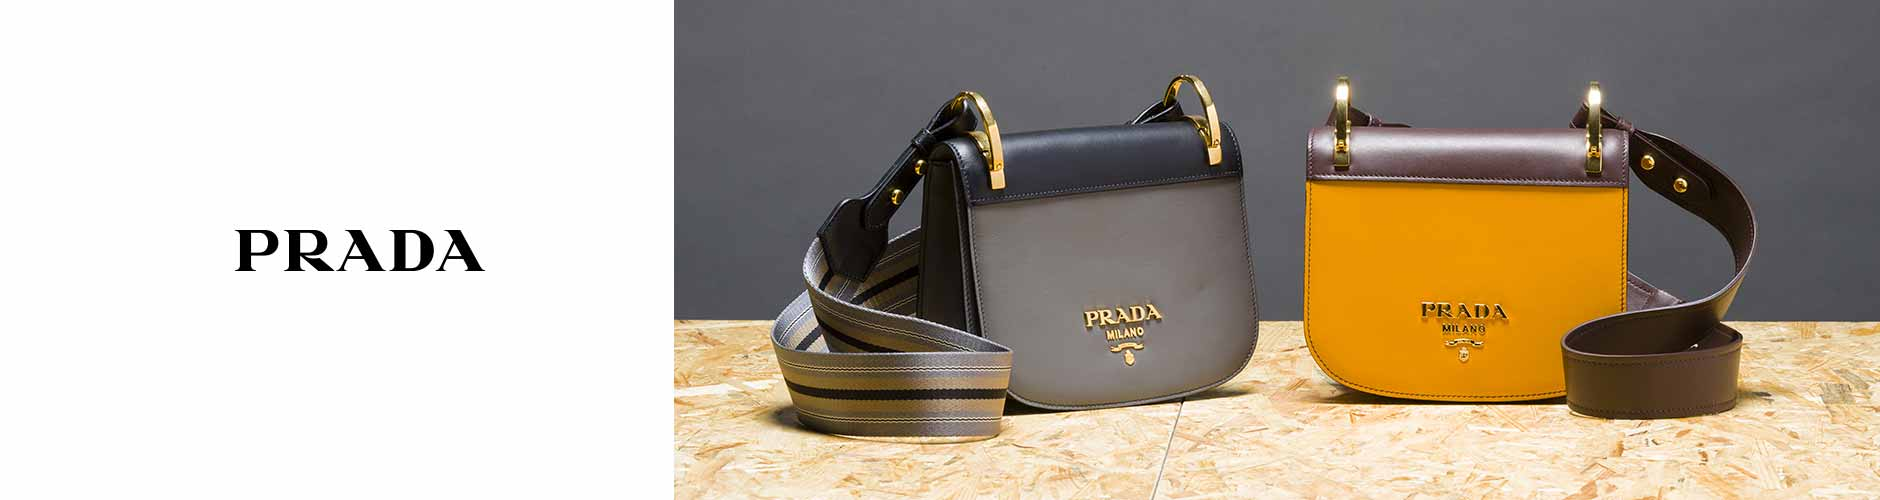 prada handbags price